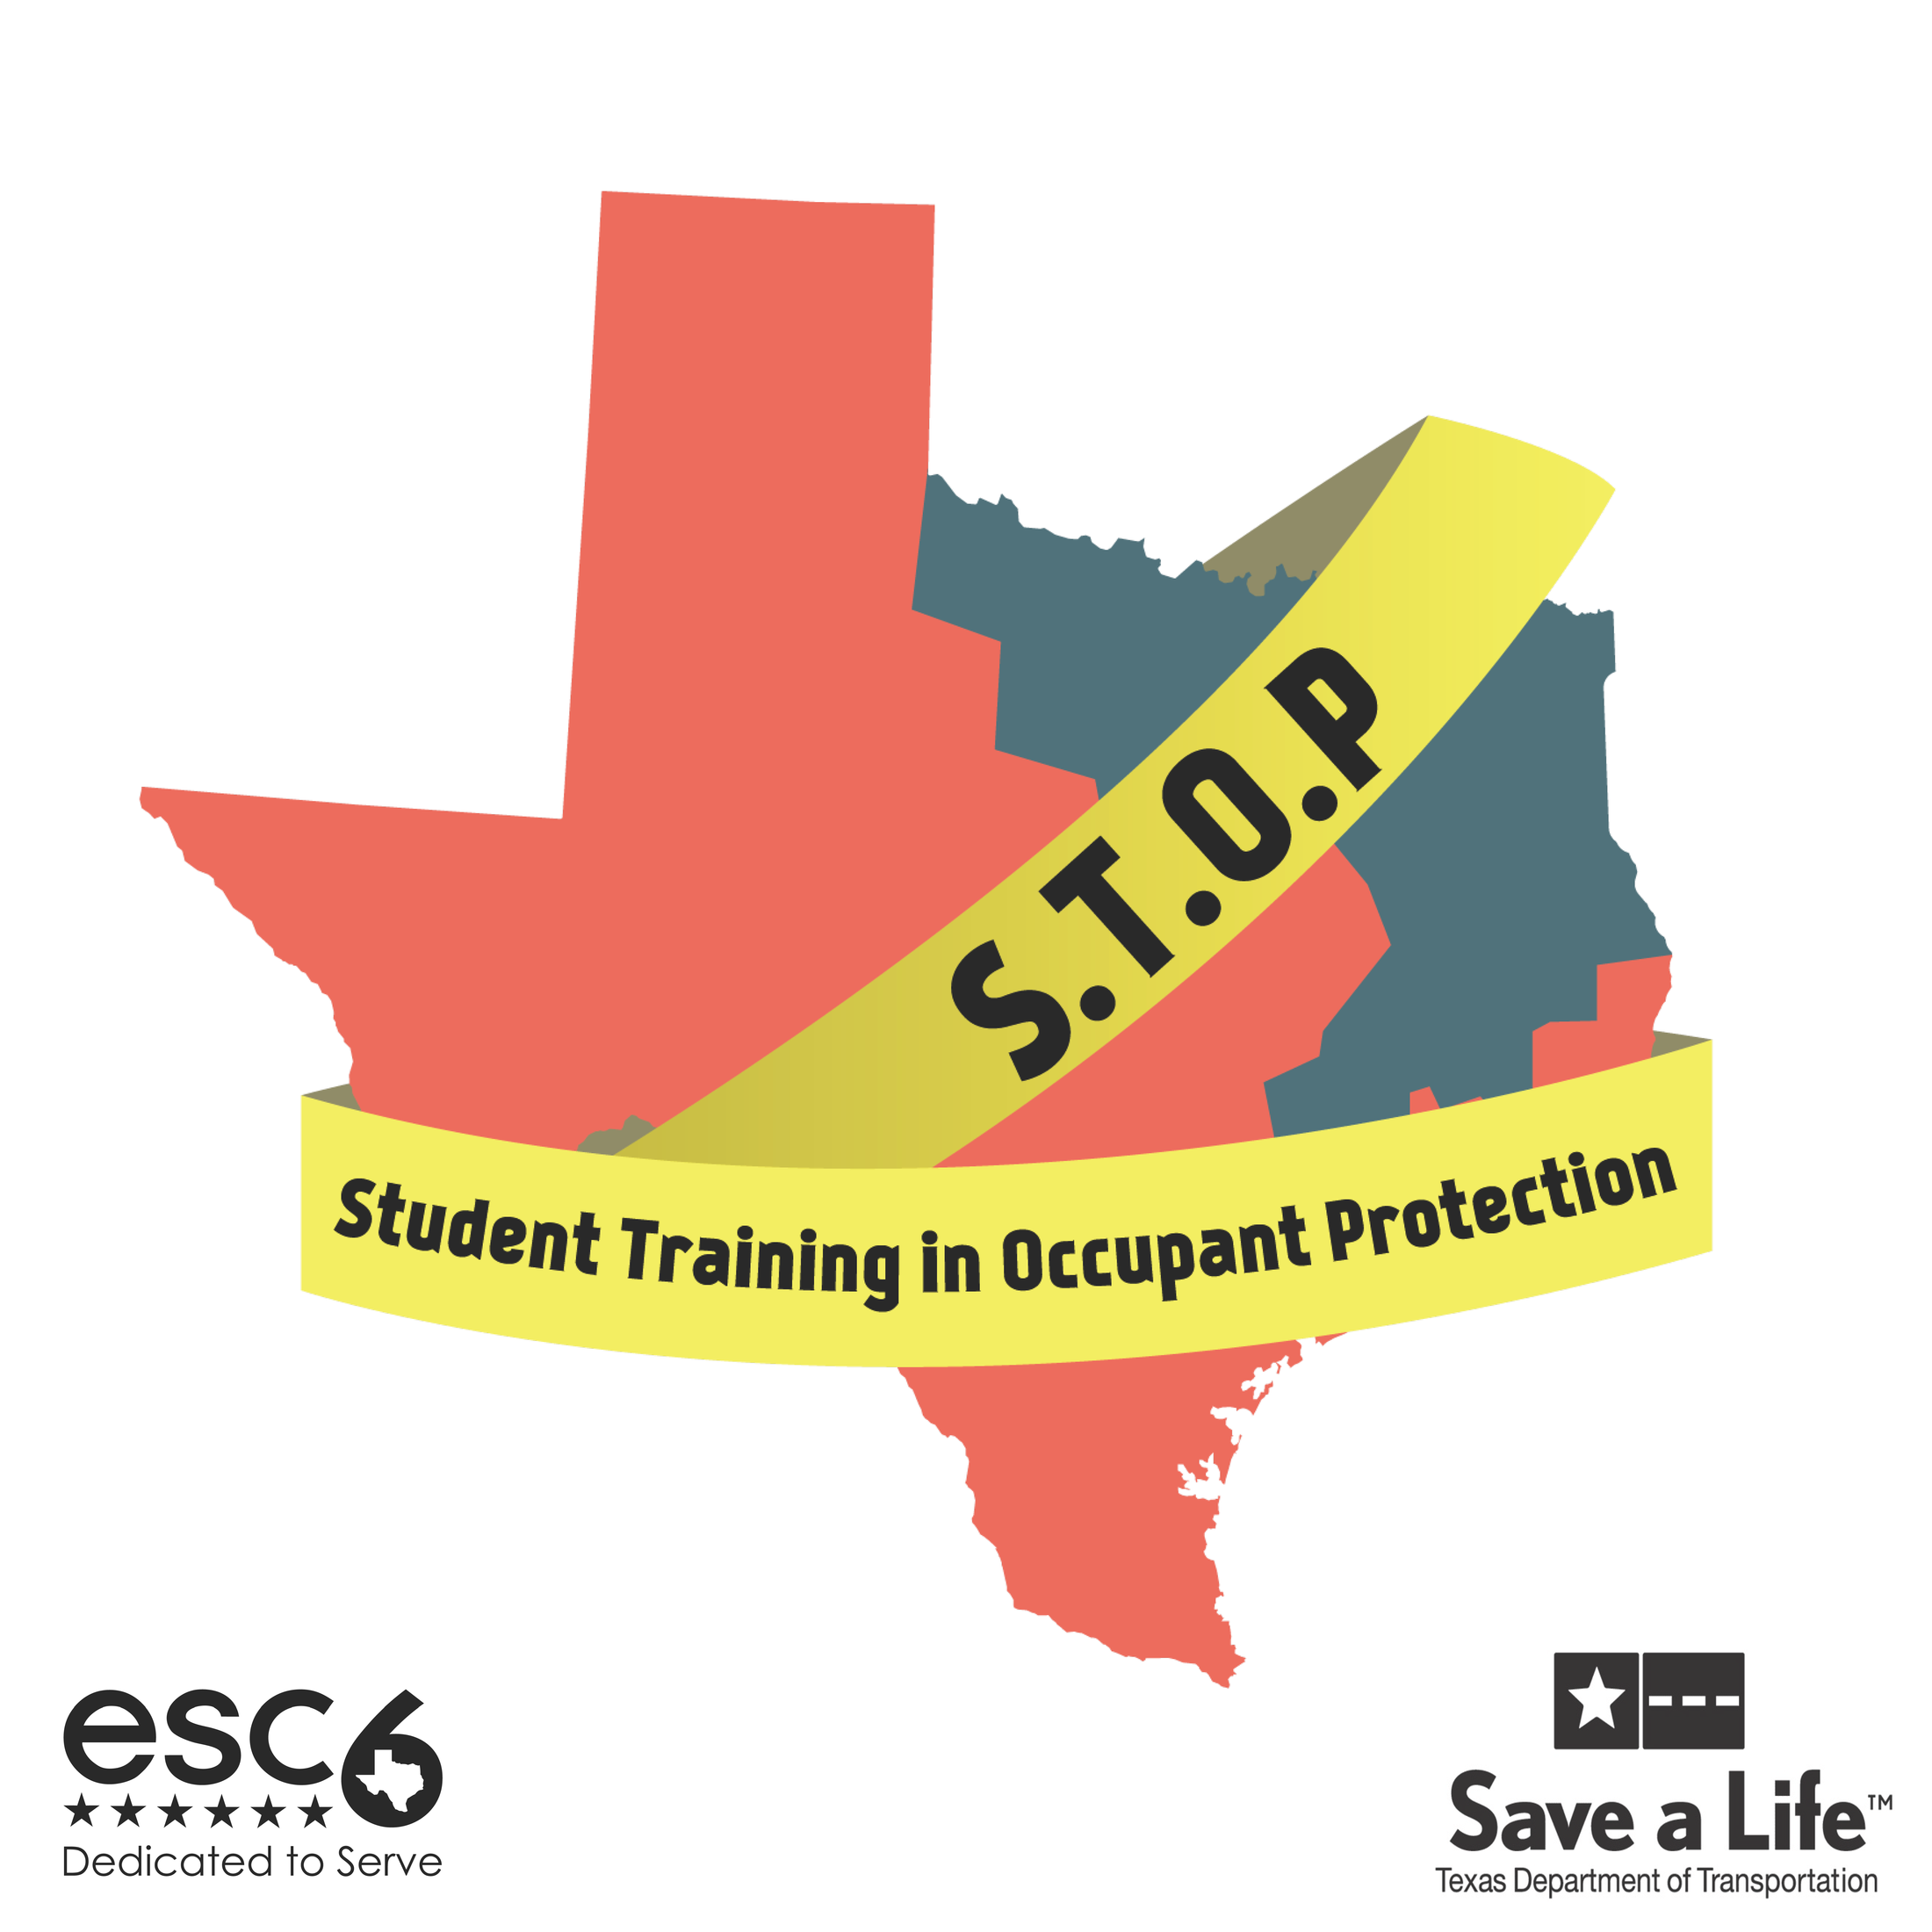 Student Training in Occupant Protection logo